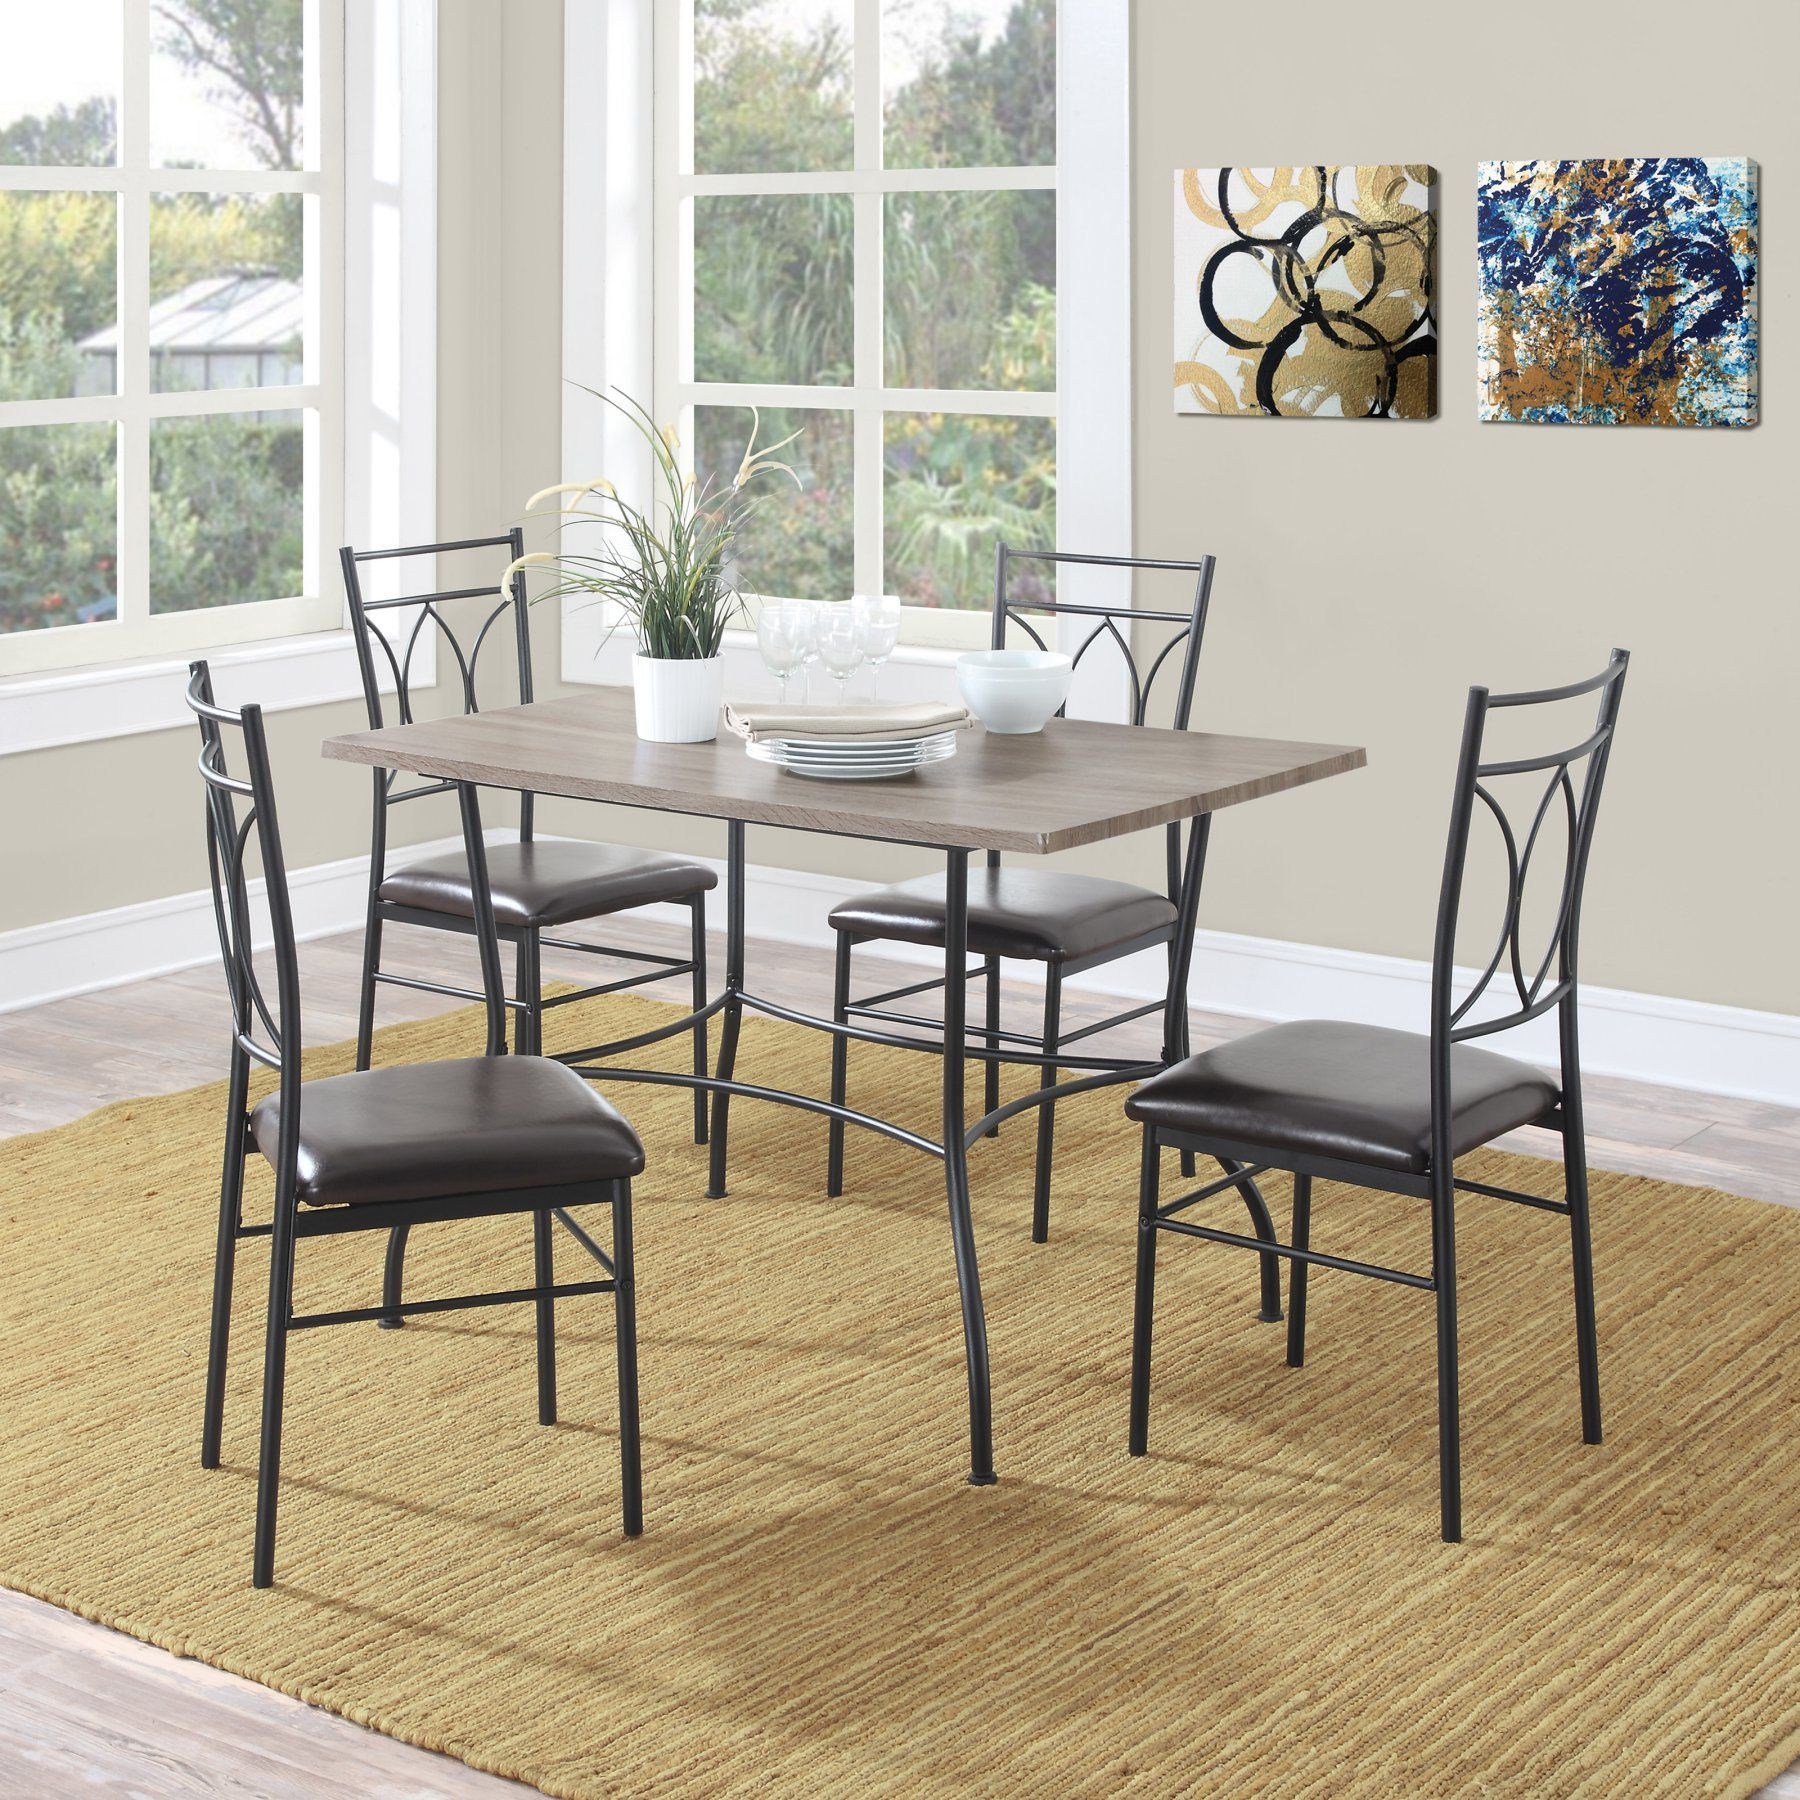 Widely Used Dorel Living Shelby 5 Piece Rustic Wood & Metal Dining Set Regarding Wiggs 5 Piece Dining Sets (View 8 of 20)